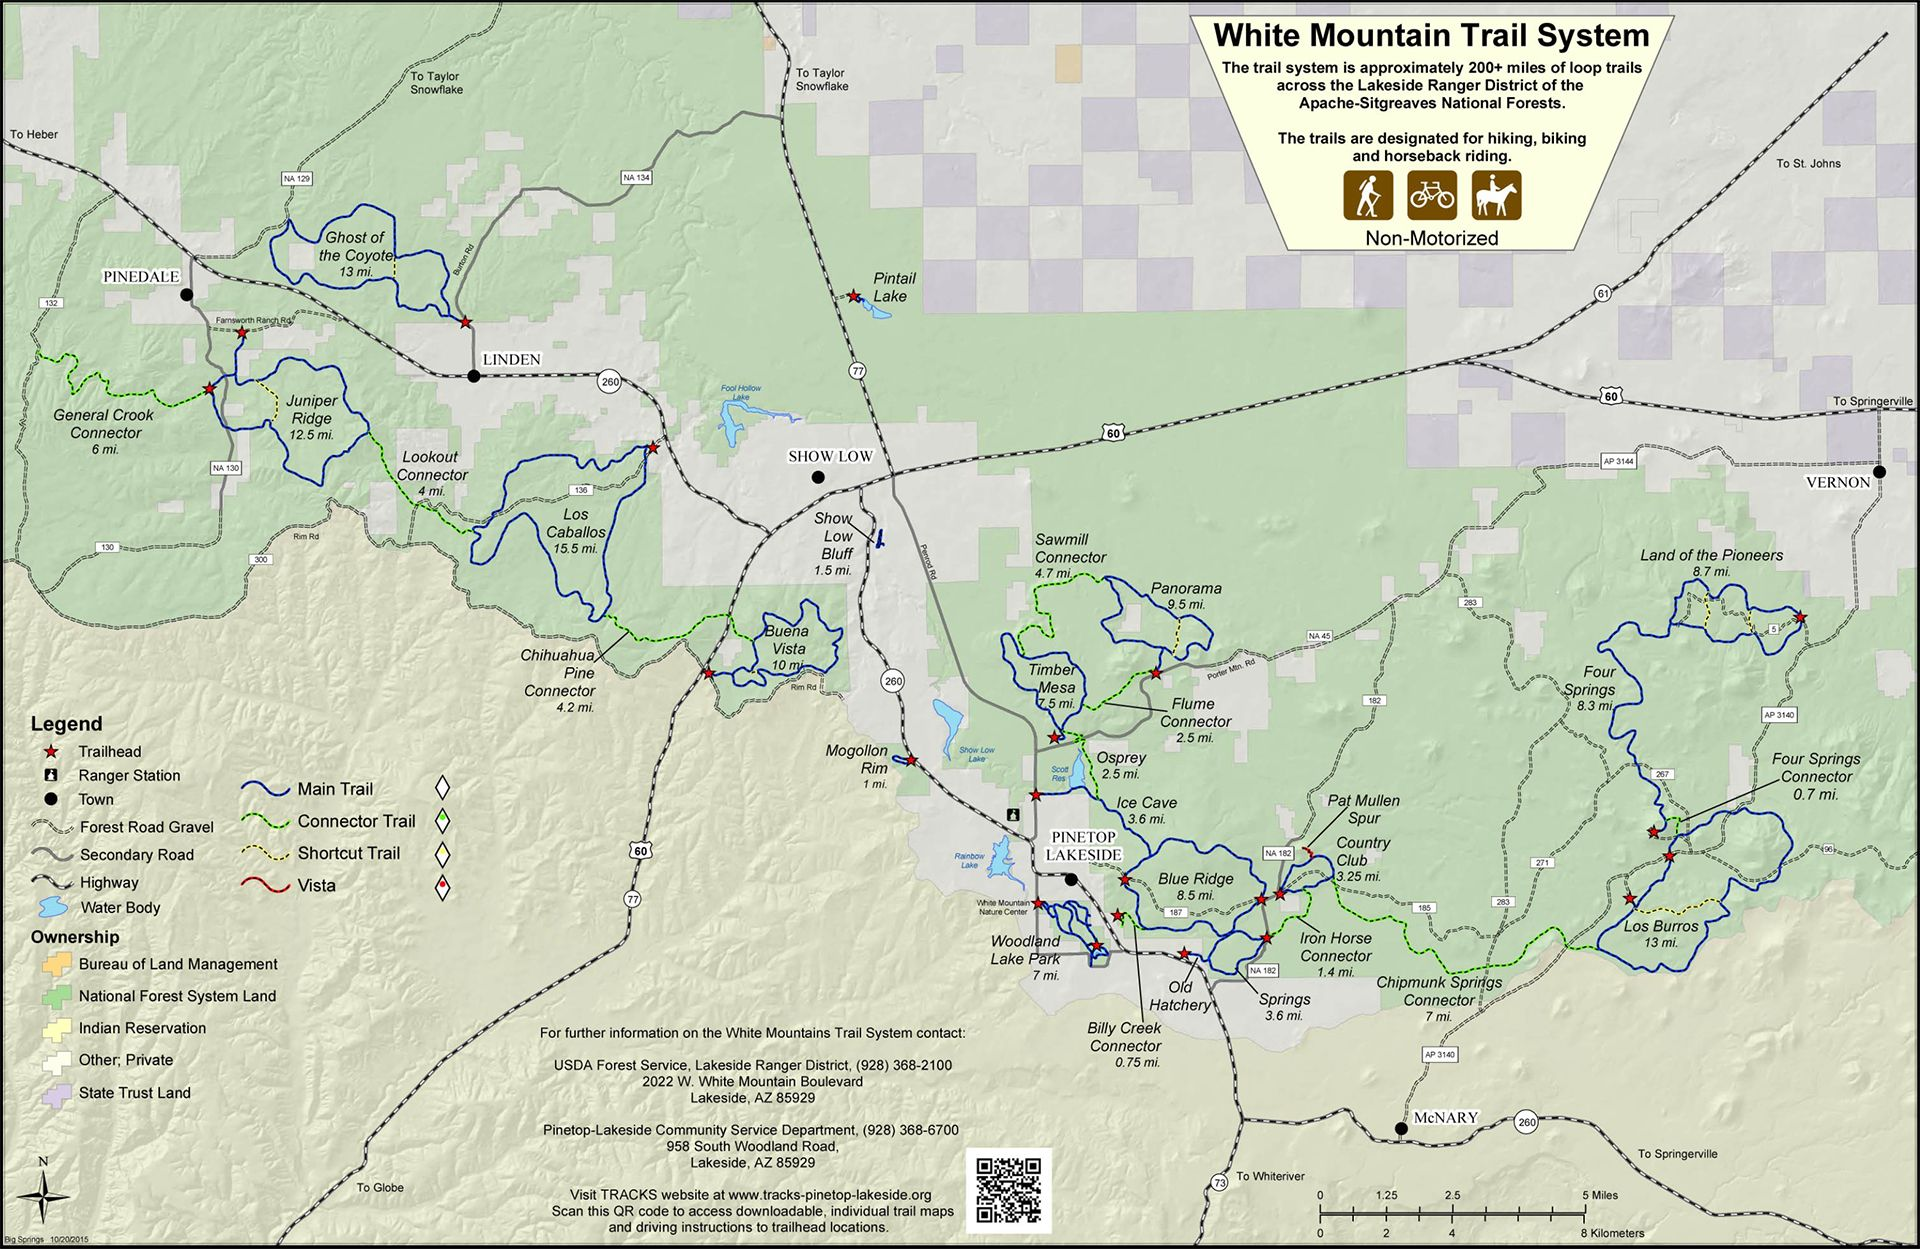 White Mountain Trail System map in 2019 | Mountain trails ...